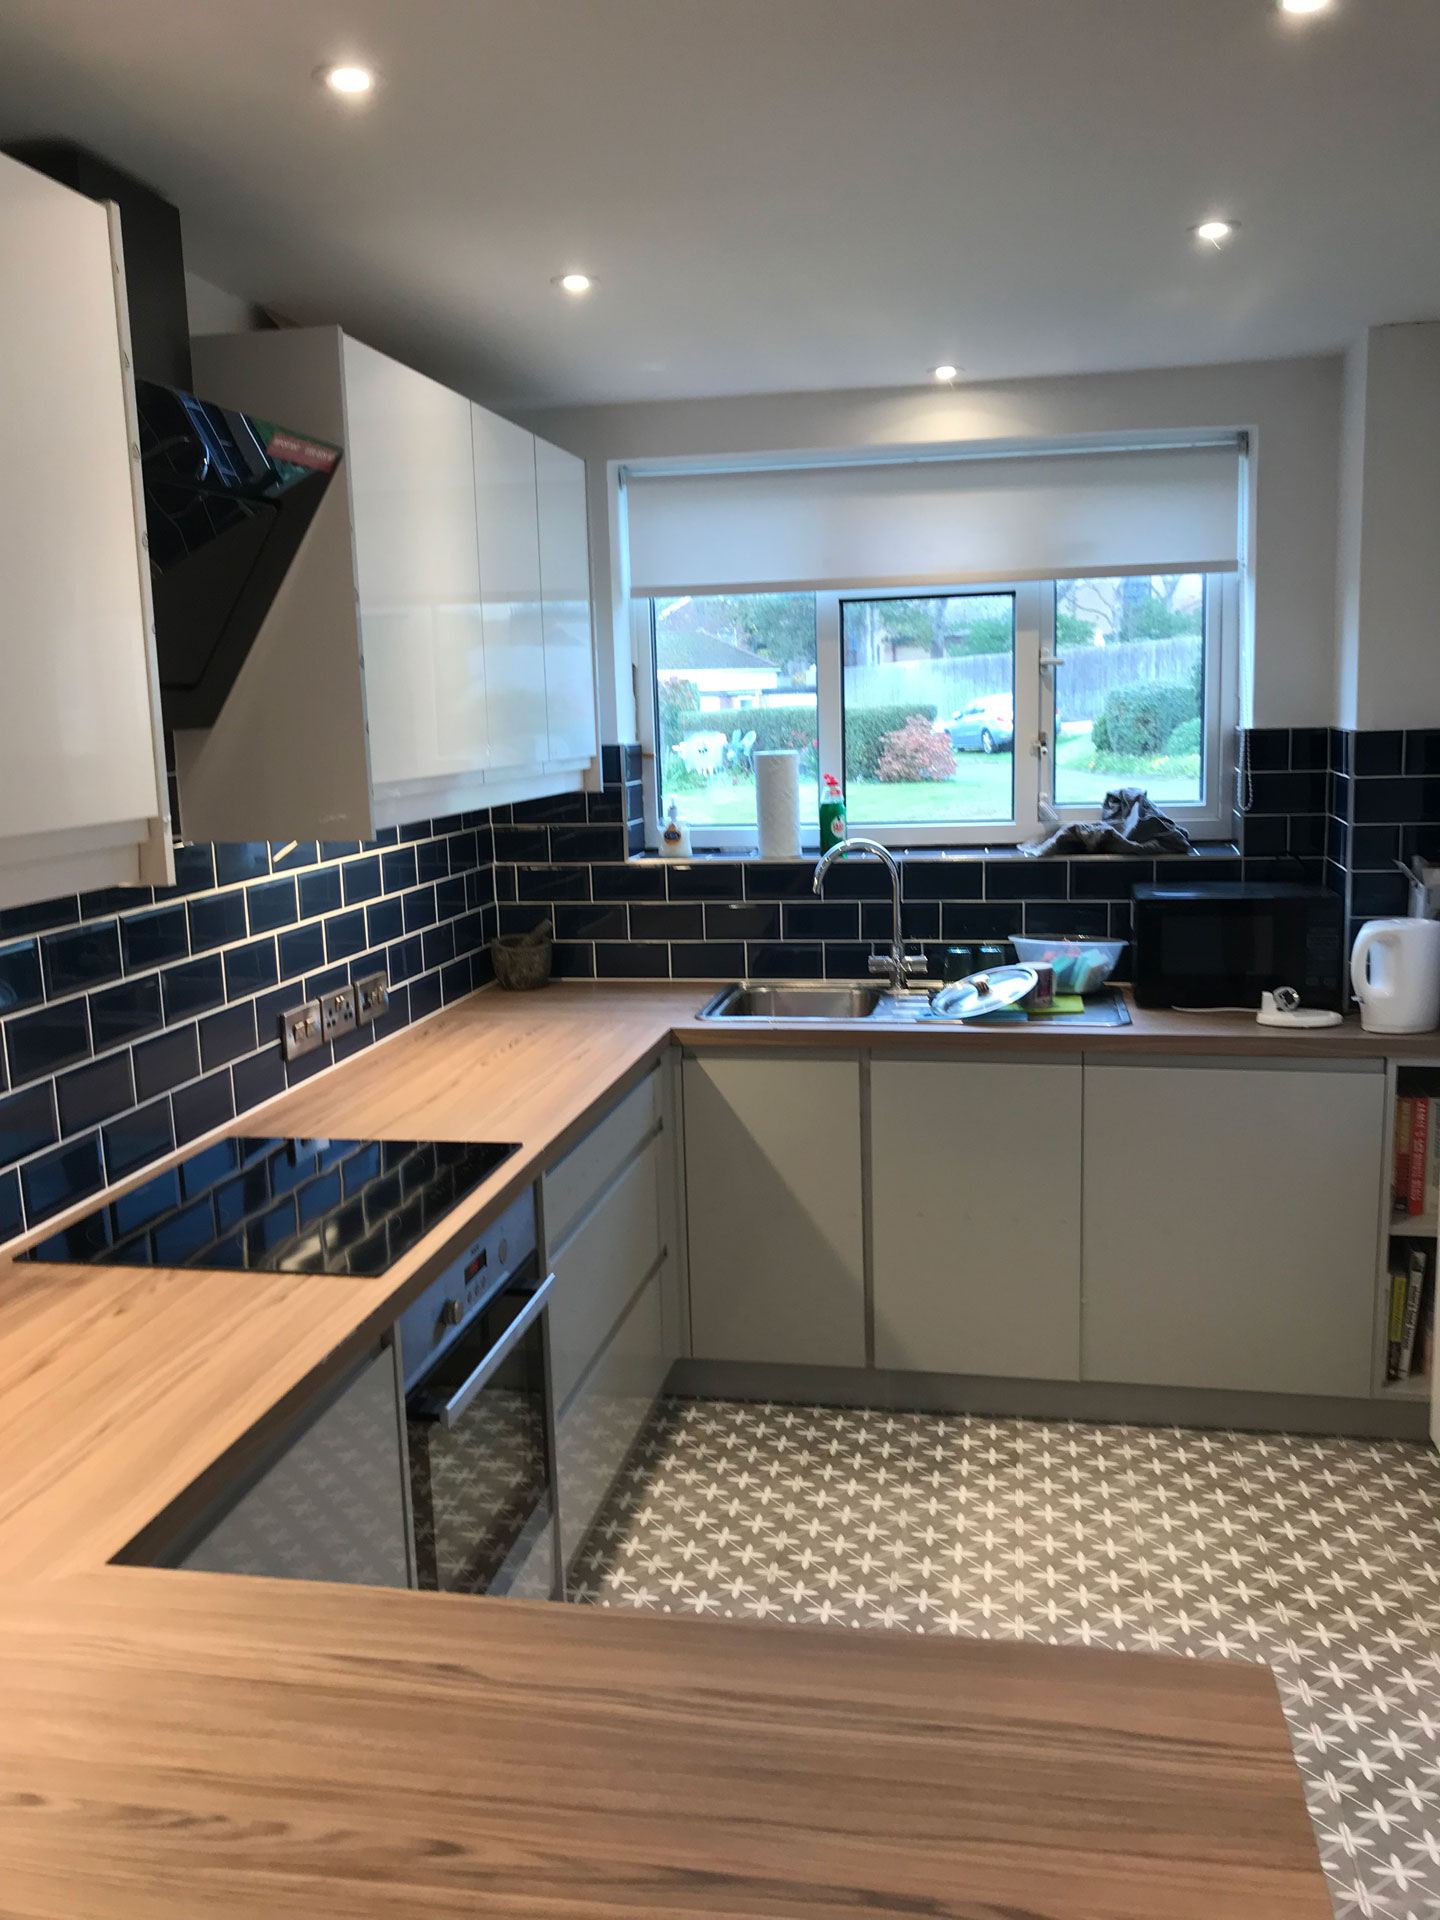 Kitchen Fitting by Emerald Builders Ltd Bournemouth Poole Christchurch Dorset